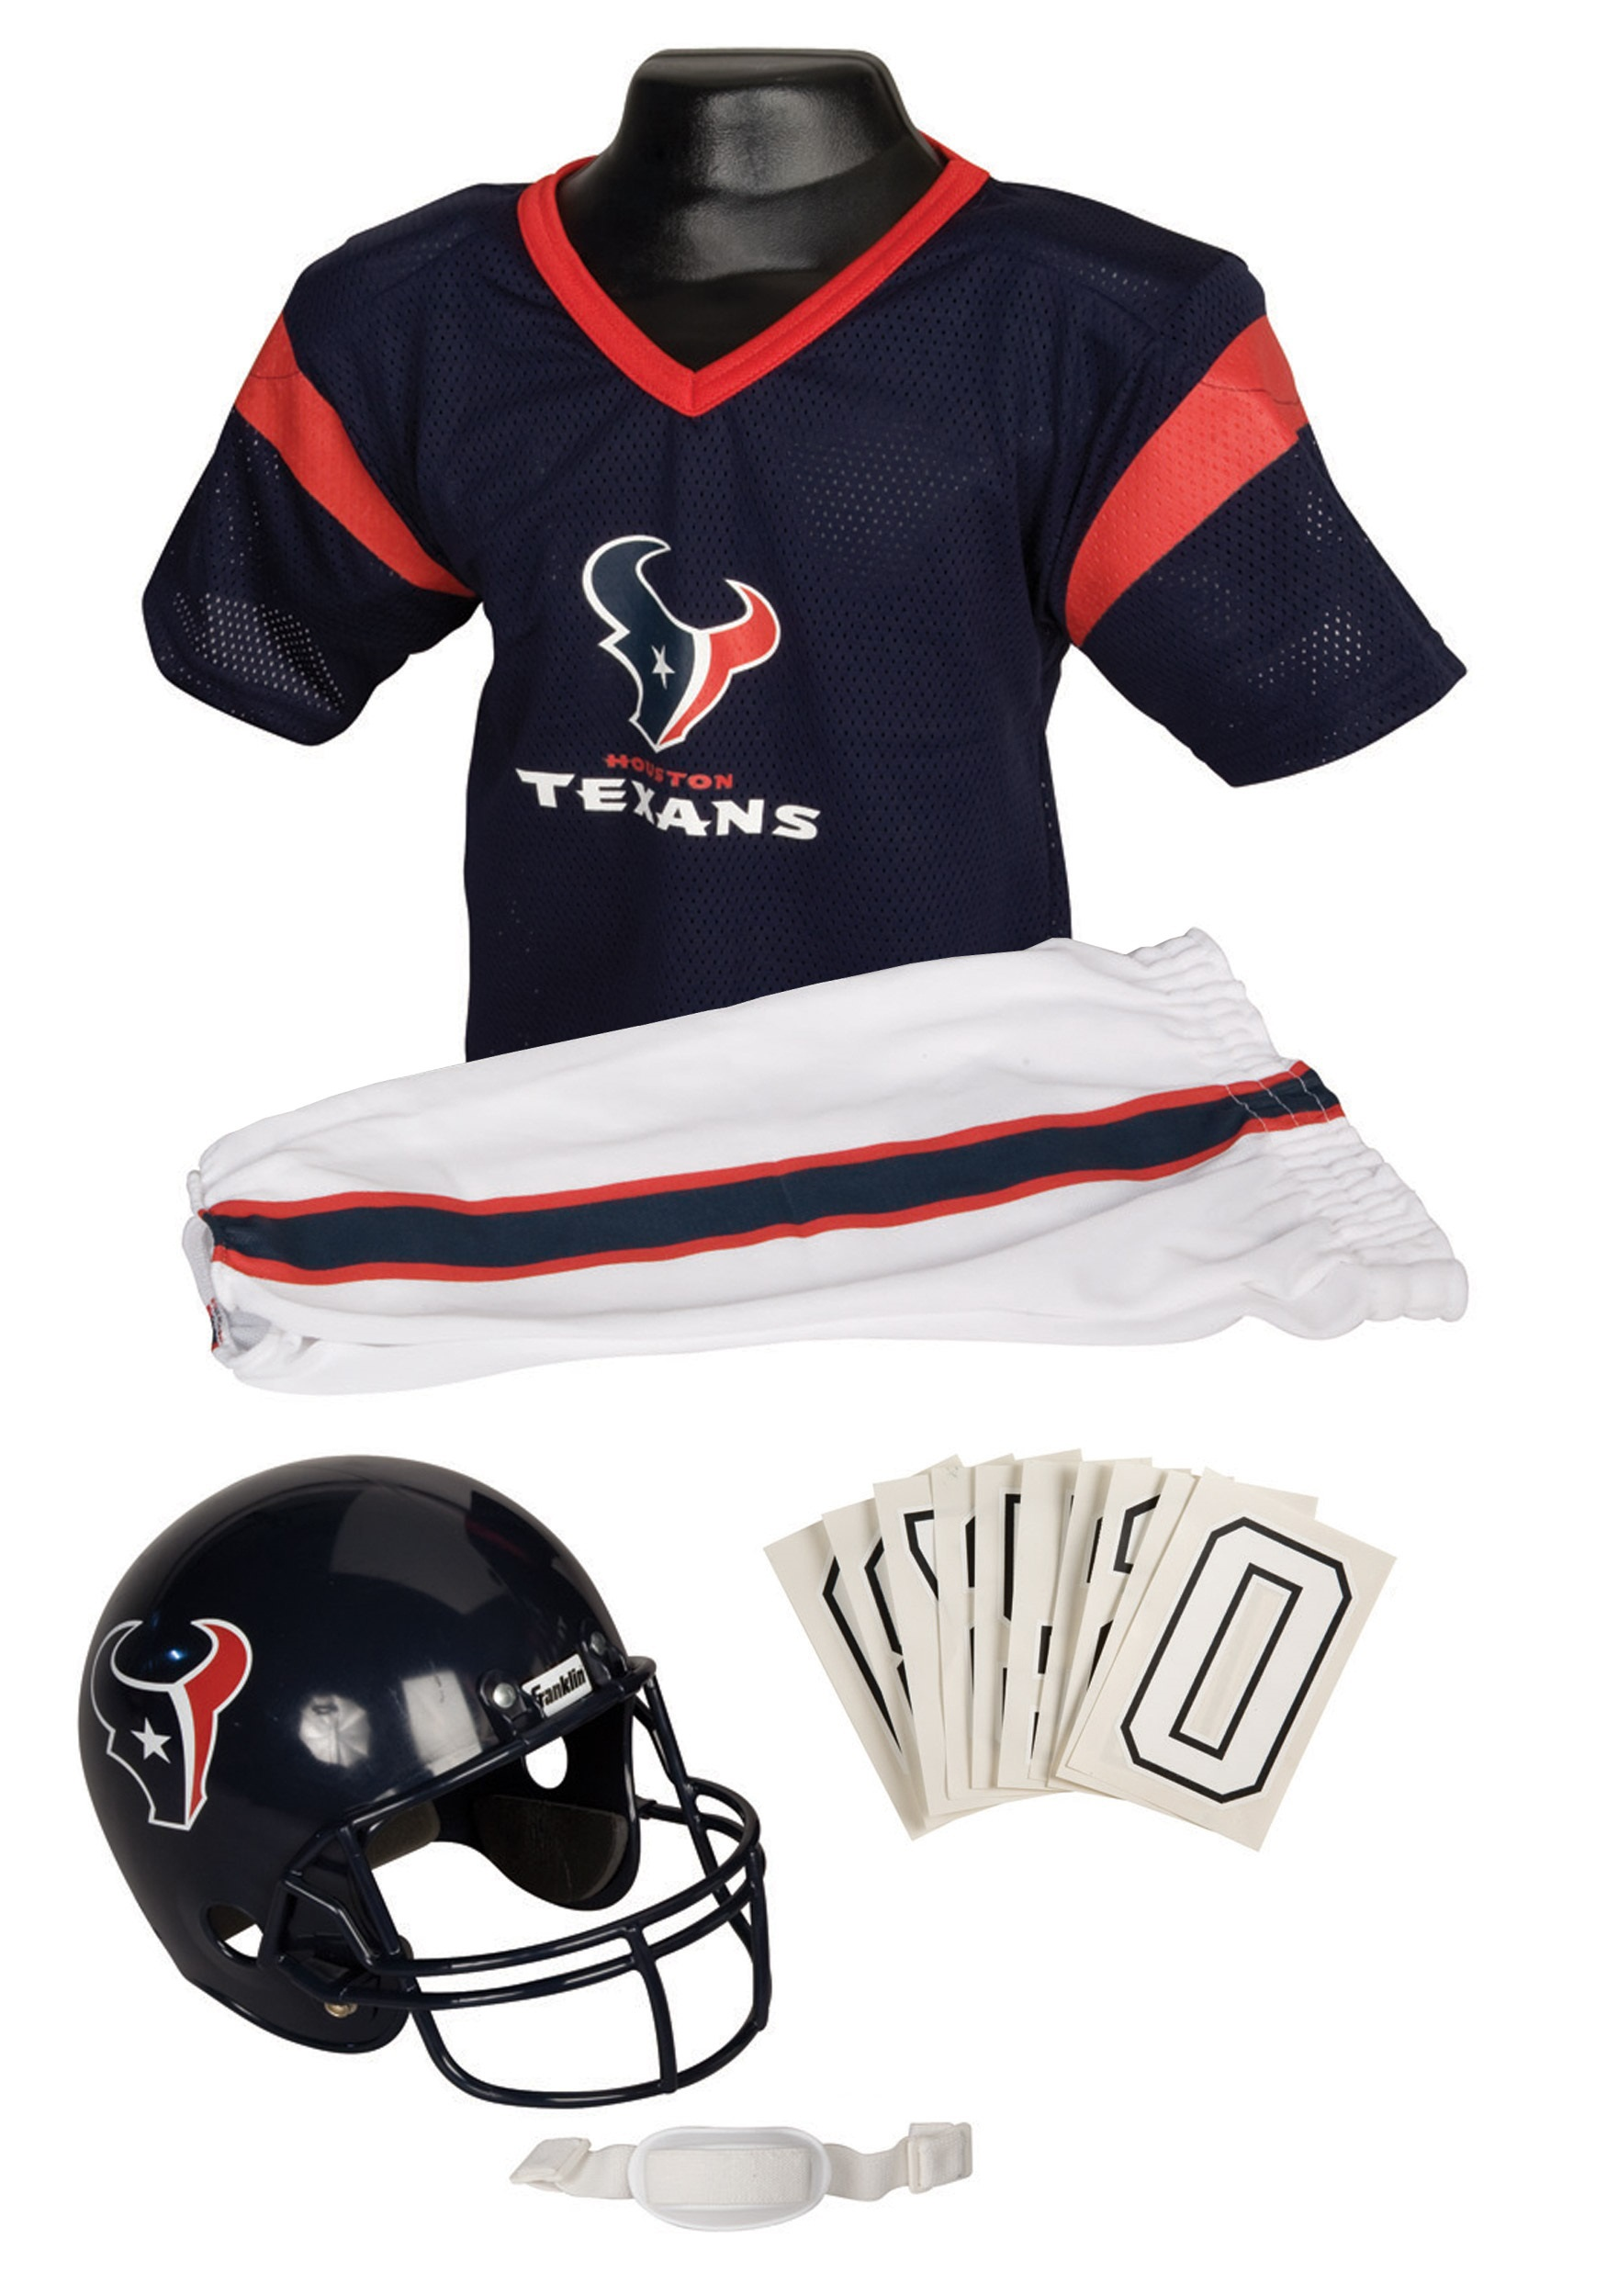 huge discount a2fe7 edb0e Kids NFL Texans Uniform Costume